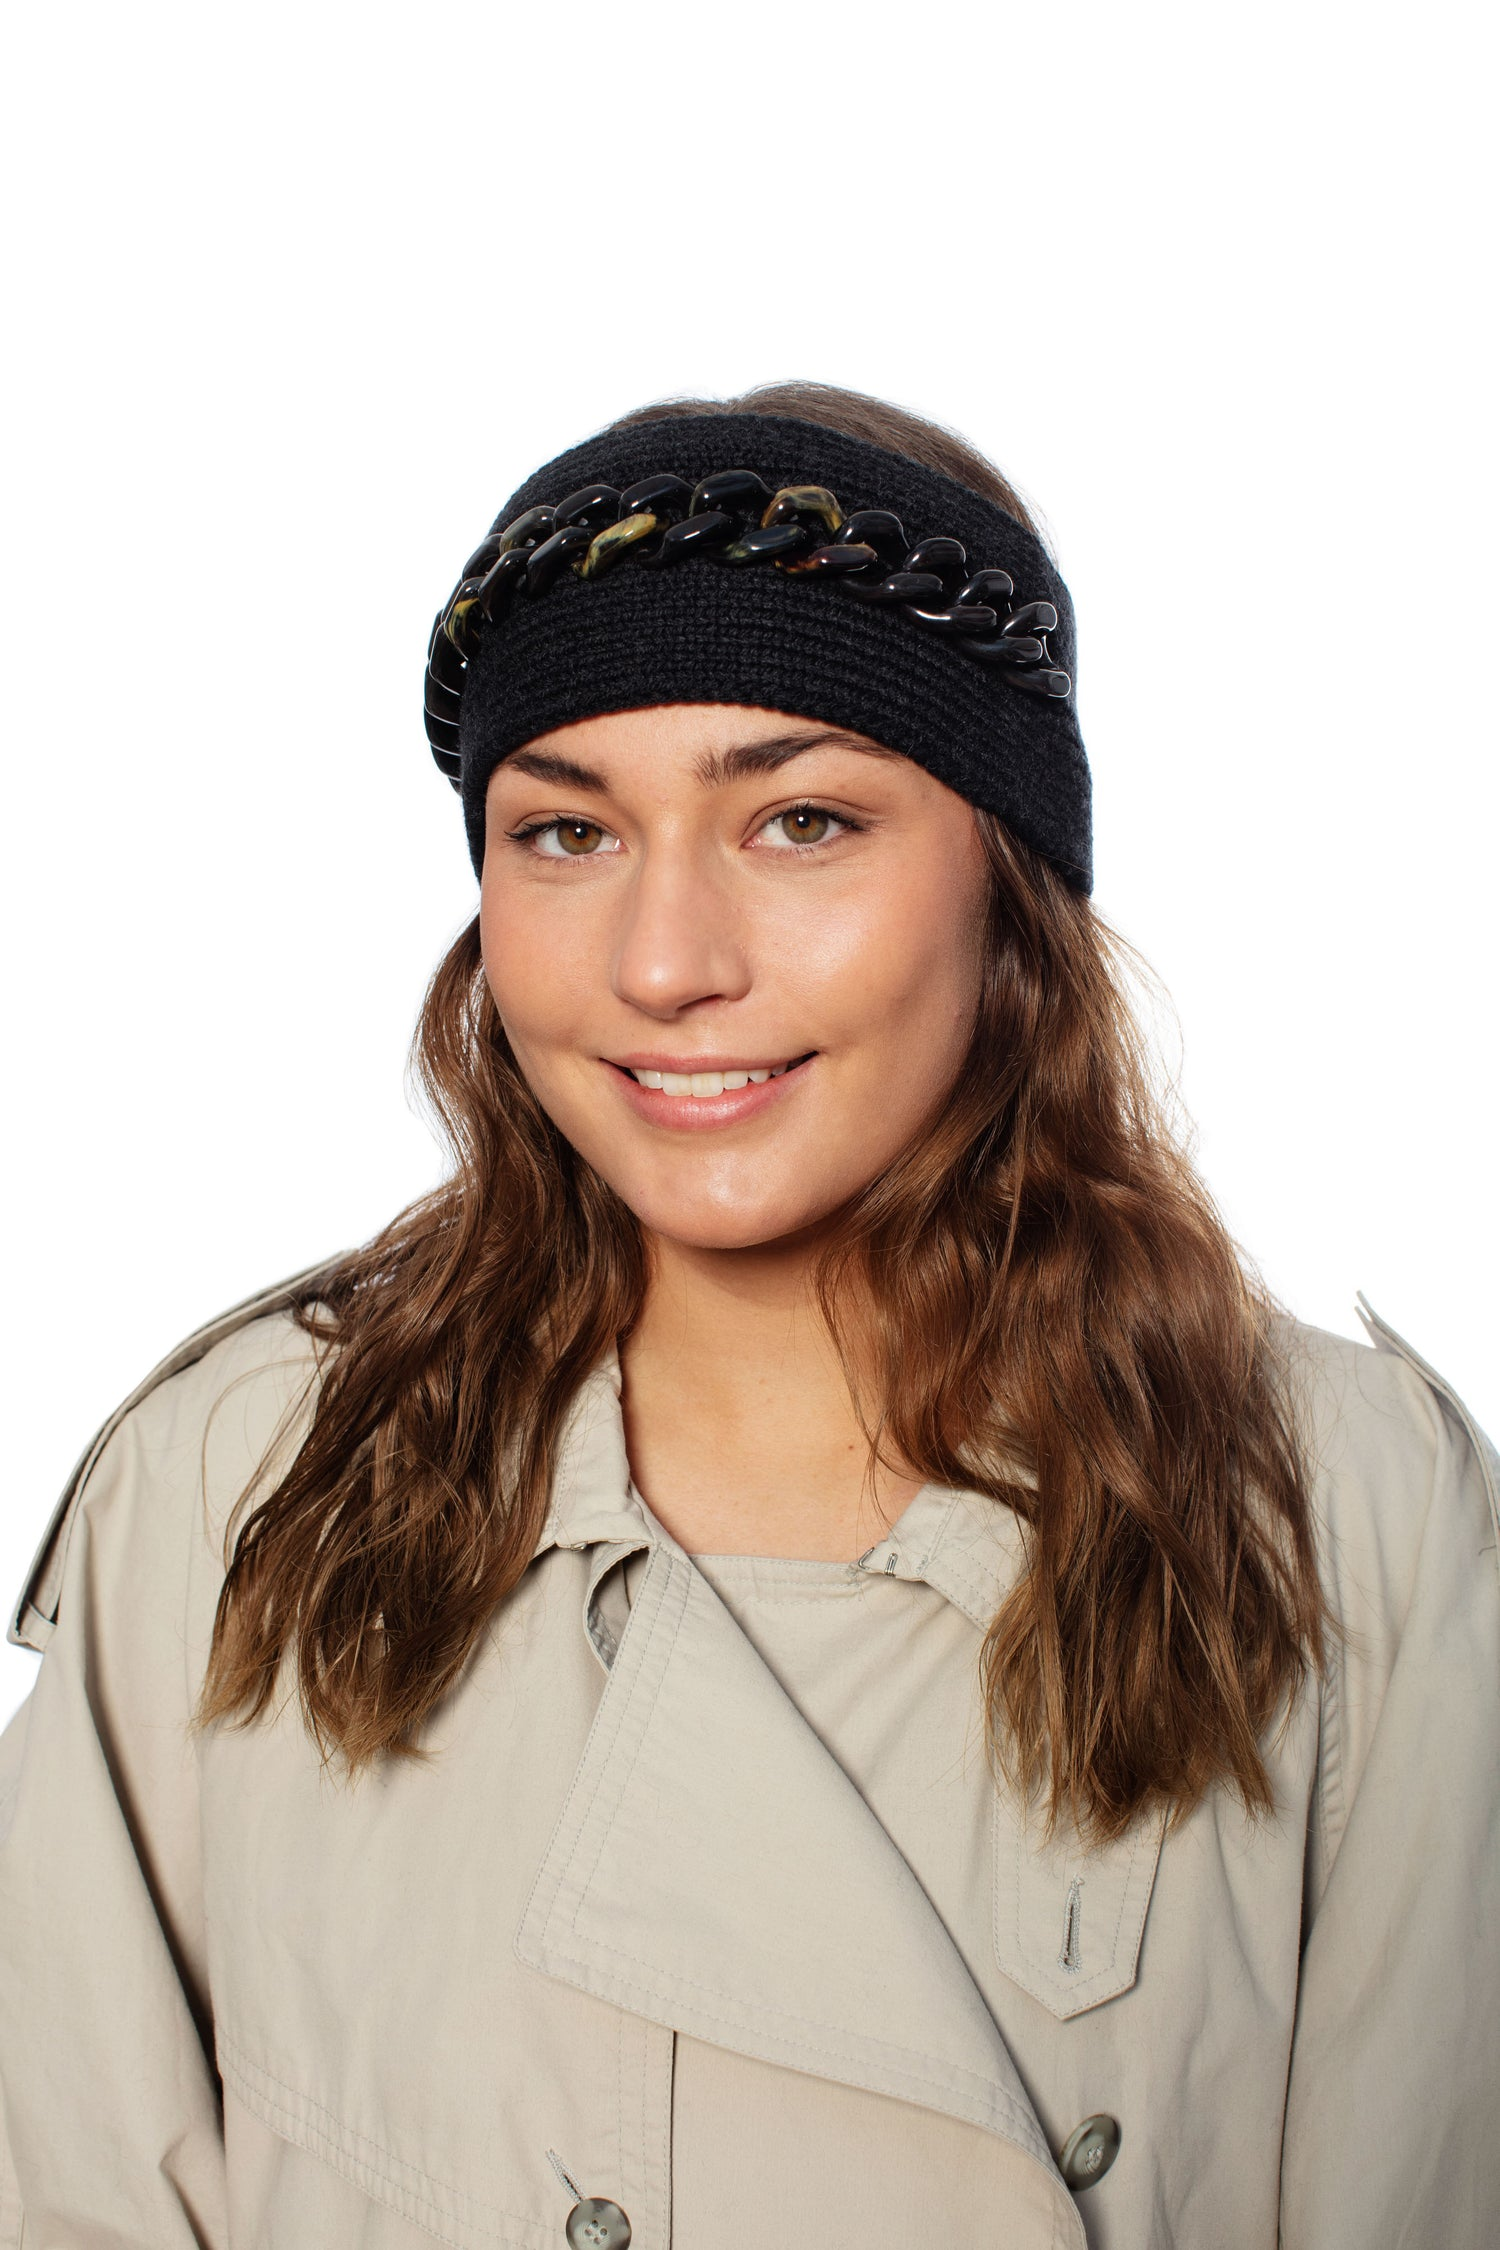 No. 5 Headband with chain